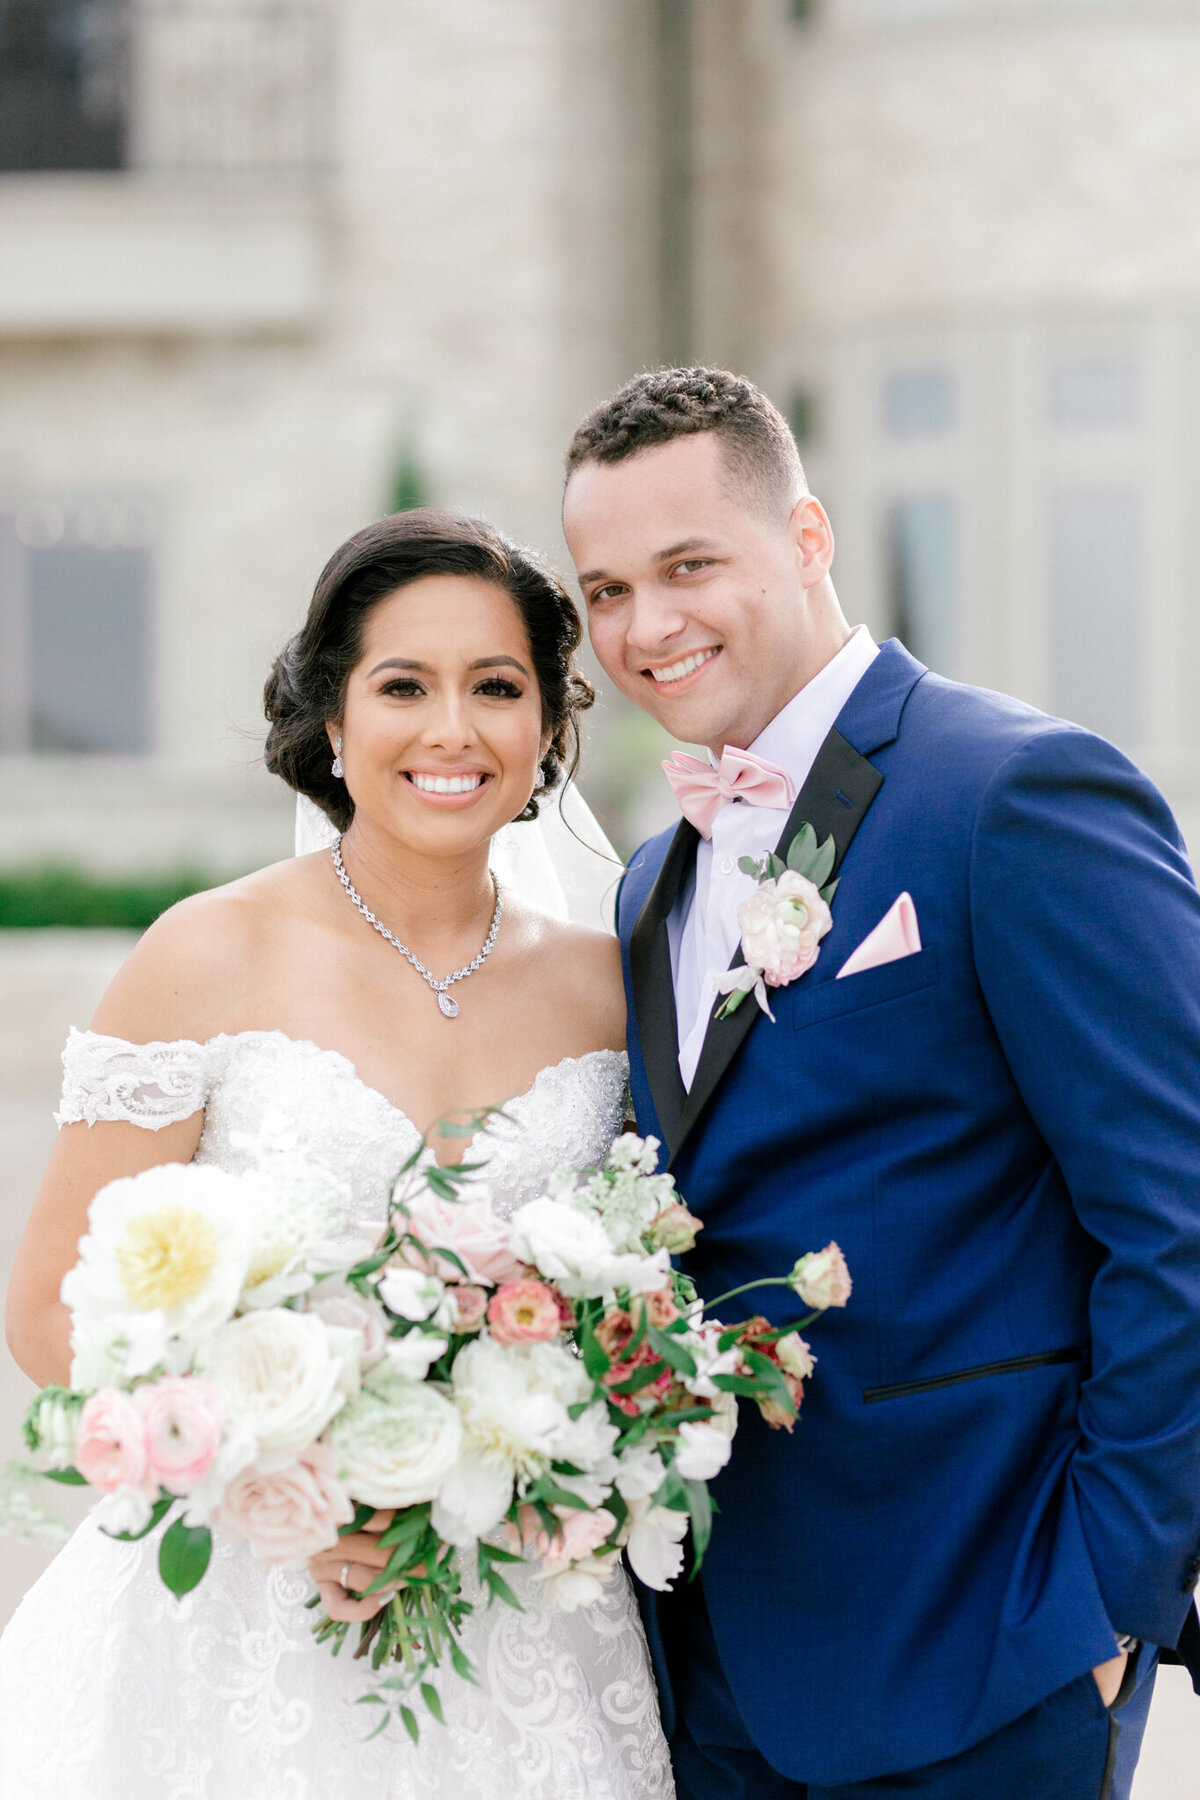 Jasmine & Josh Wedding at Knotting Hill Place | Dallas DFW Wedding Photographer | Sami Kathryn Photography-98